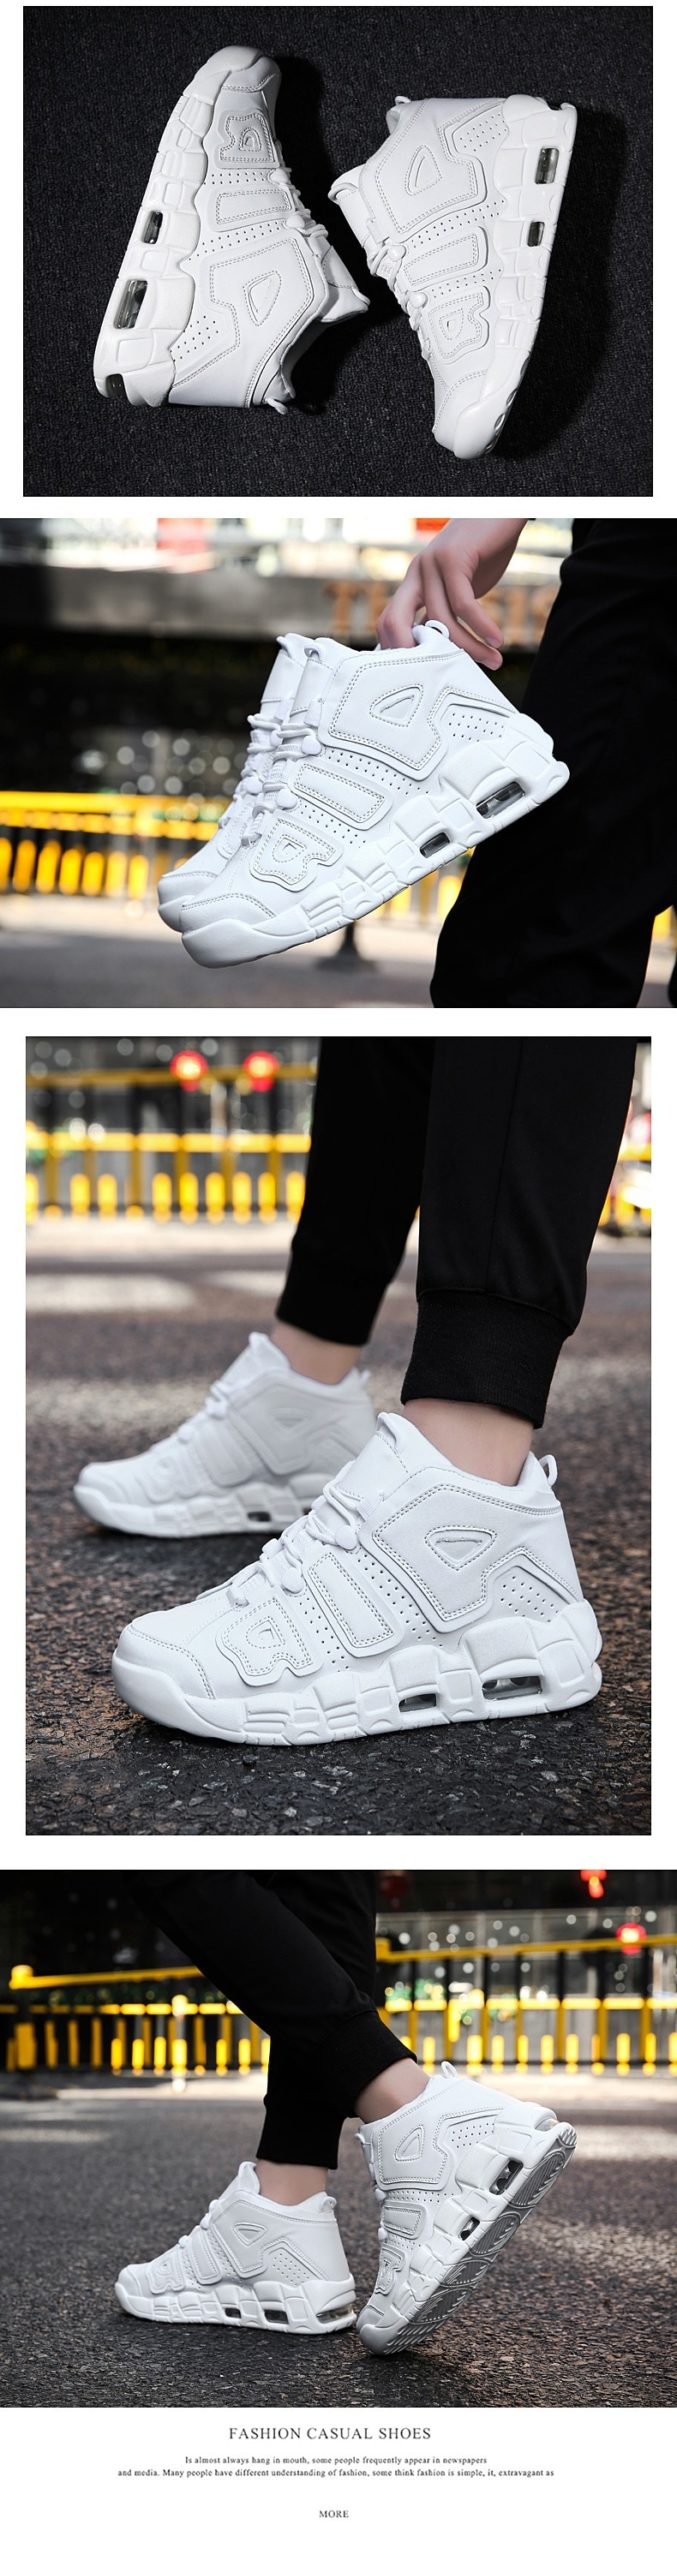 Autumn And Winter High Top Men Sneakers Outdoor Breathable Running Shoes Damping Air Cushion Men's Sport Basketball Shoes 37-45